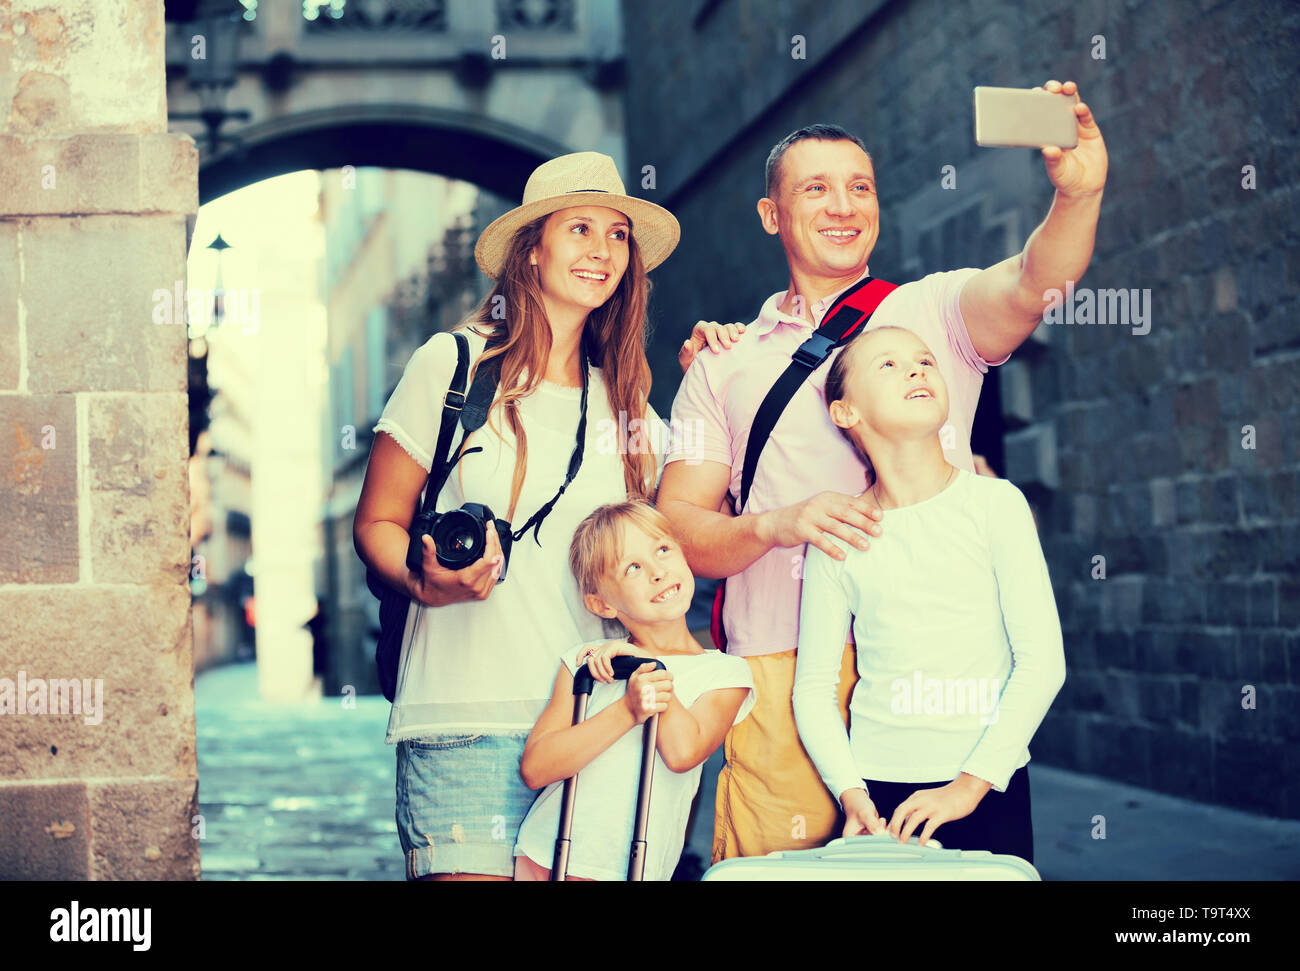 Laughing parents with two kids taking selfie near city sights - Stock Image